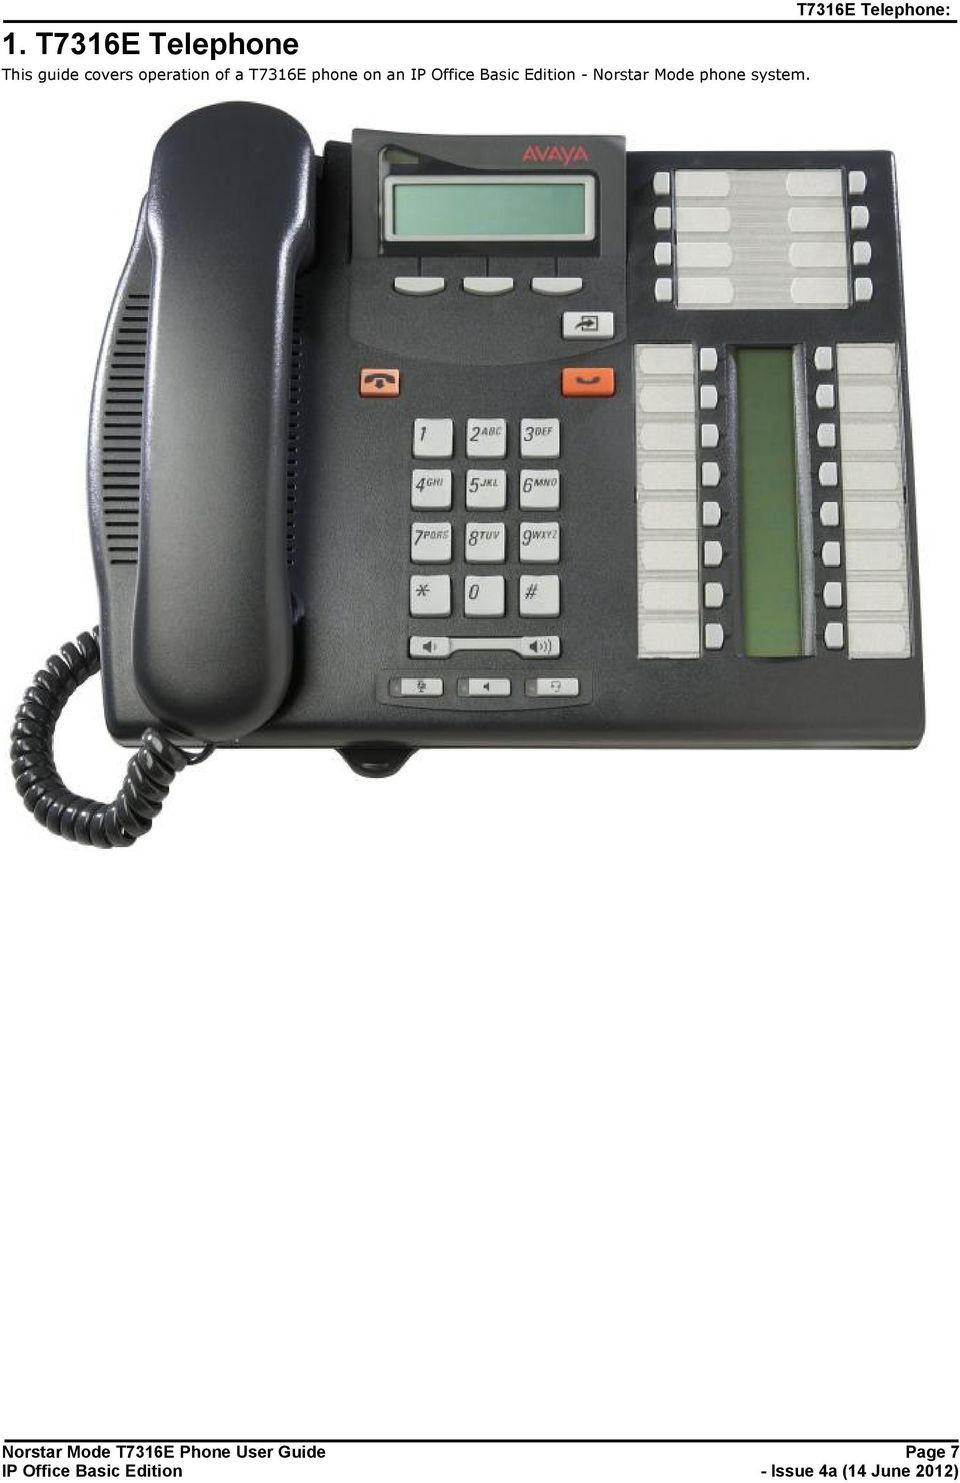 Norstar Mode phone system.